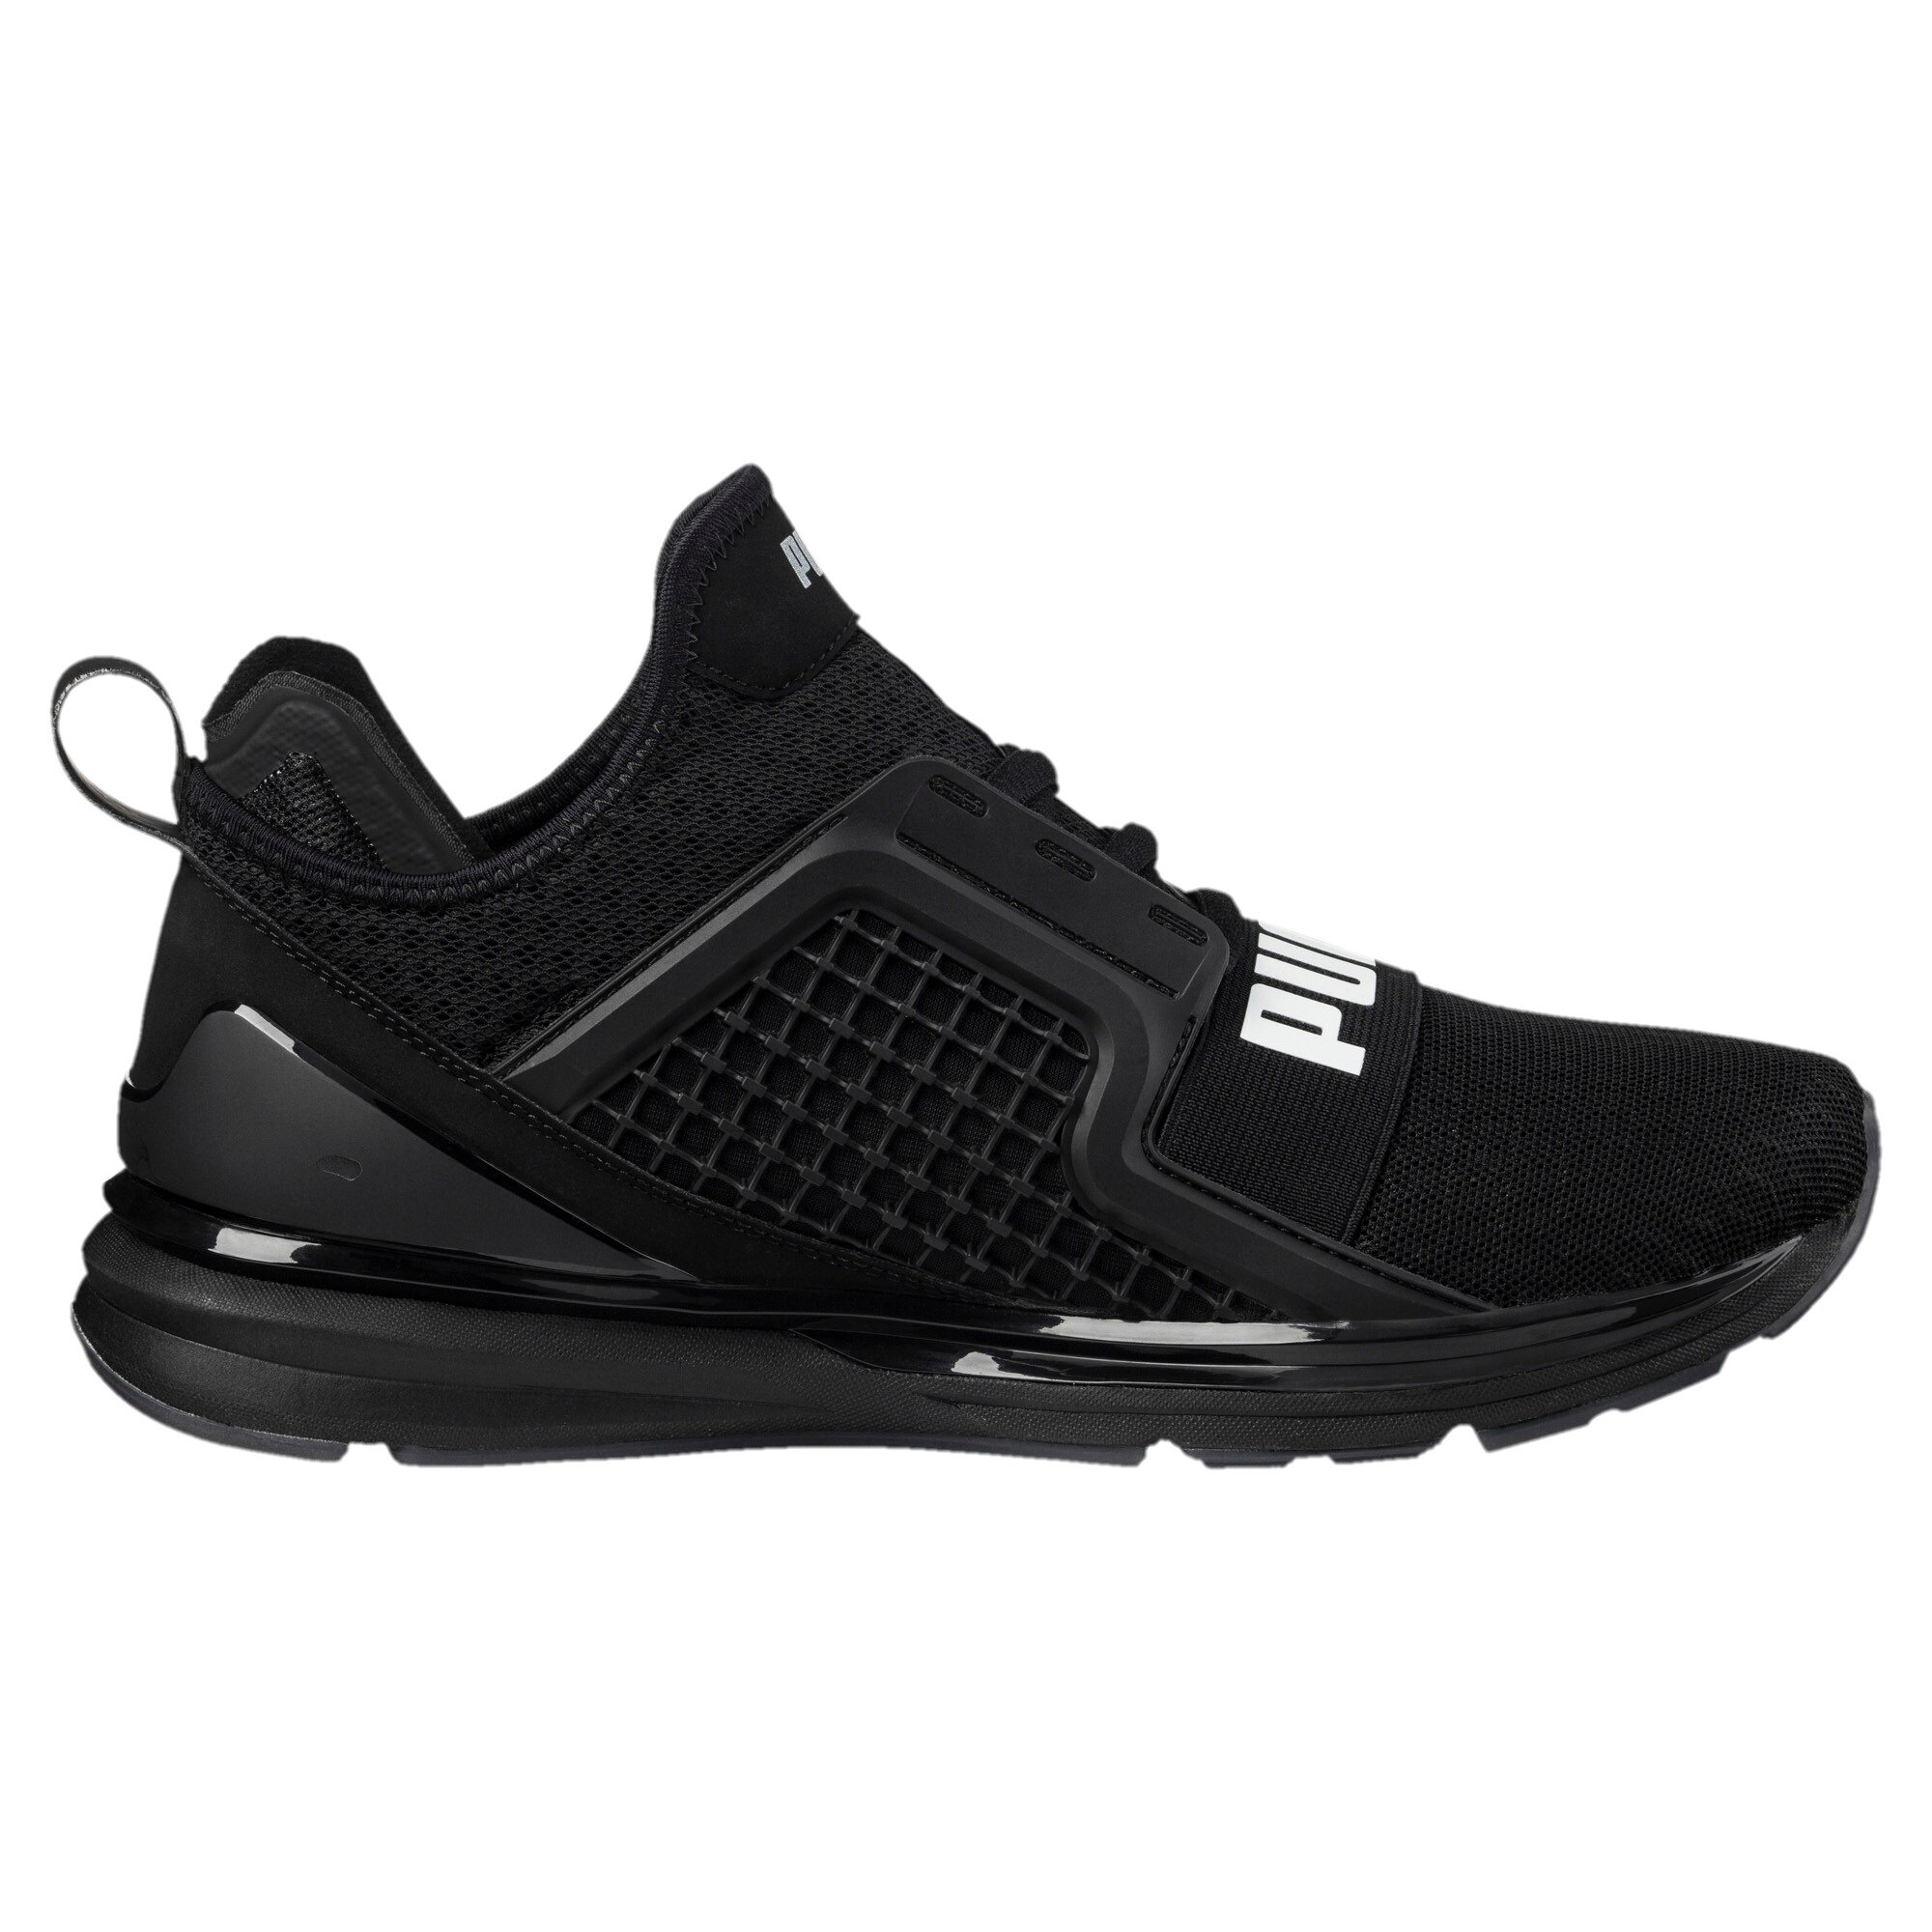 44ff4f98858 Official Puma Store  PUMA IGNITE Limitless Men s Running Shoes ...